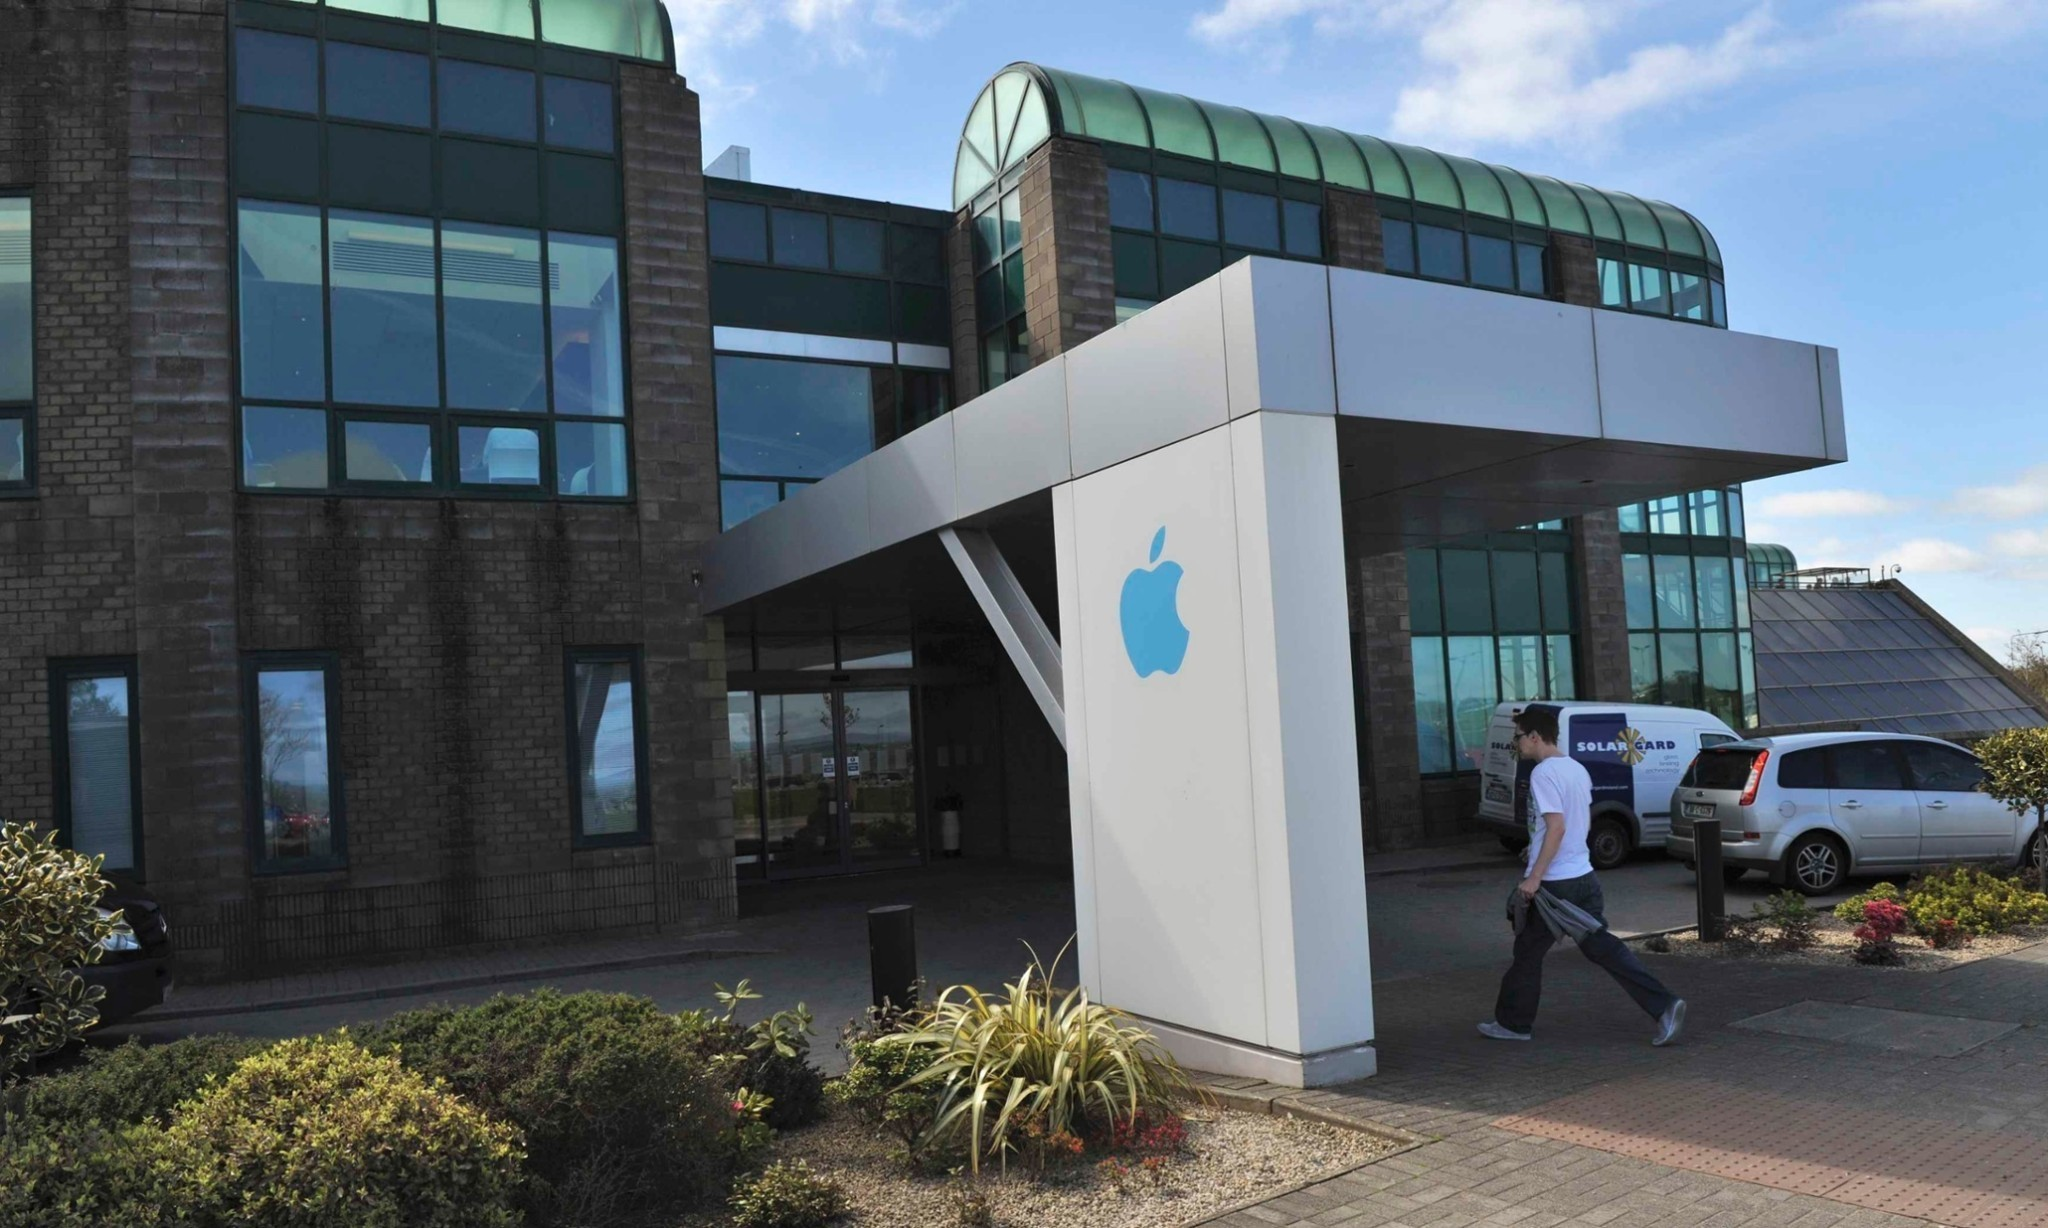 EU to accuse Apple of taking illegal tax aid from Ireland, reports say